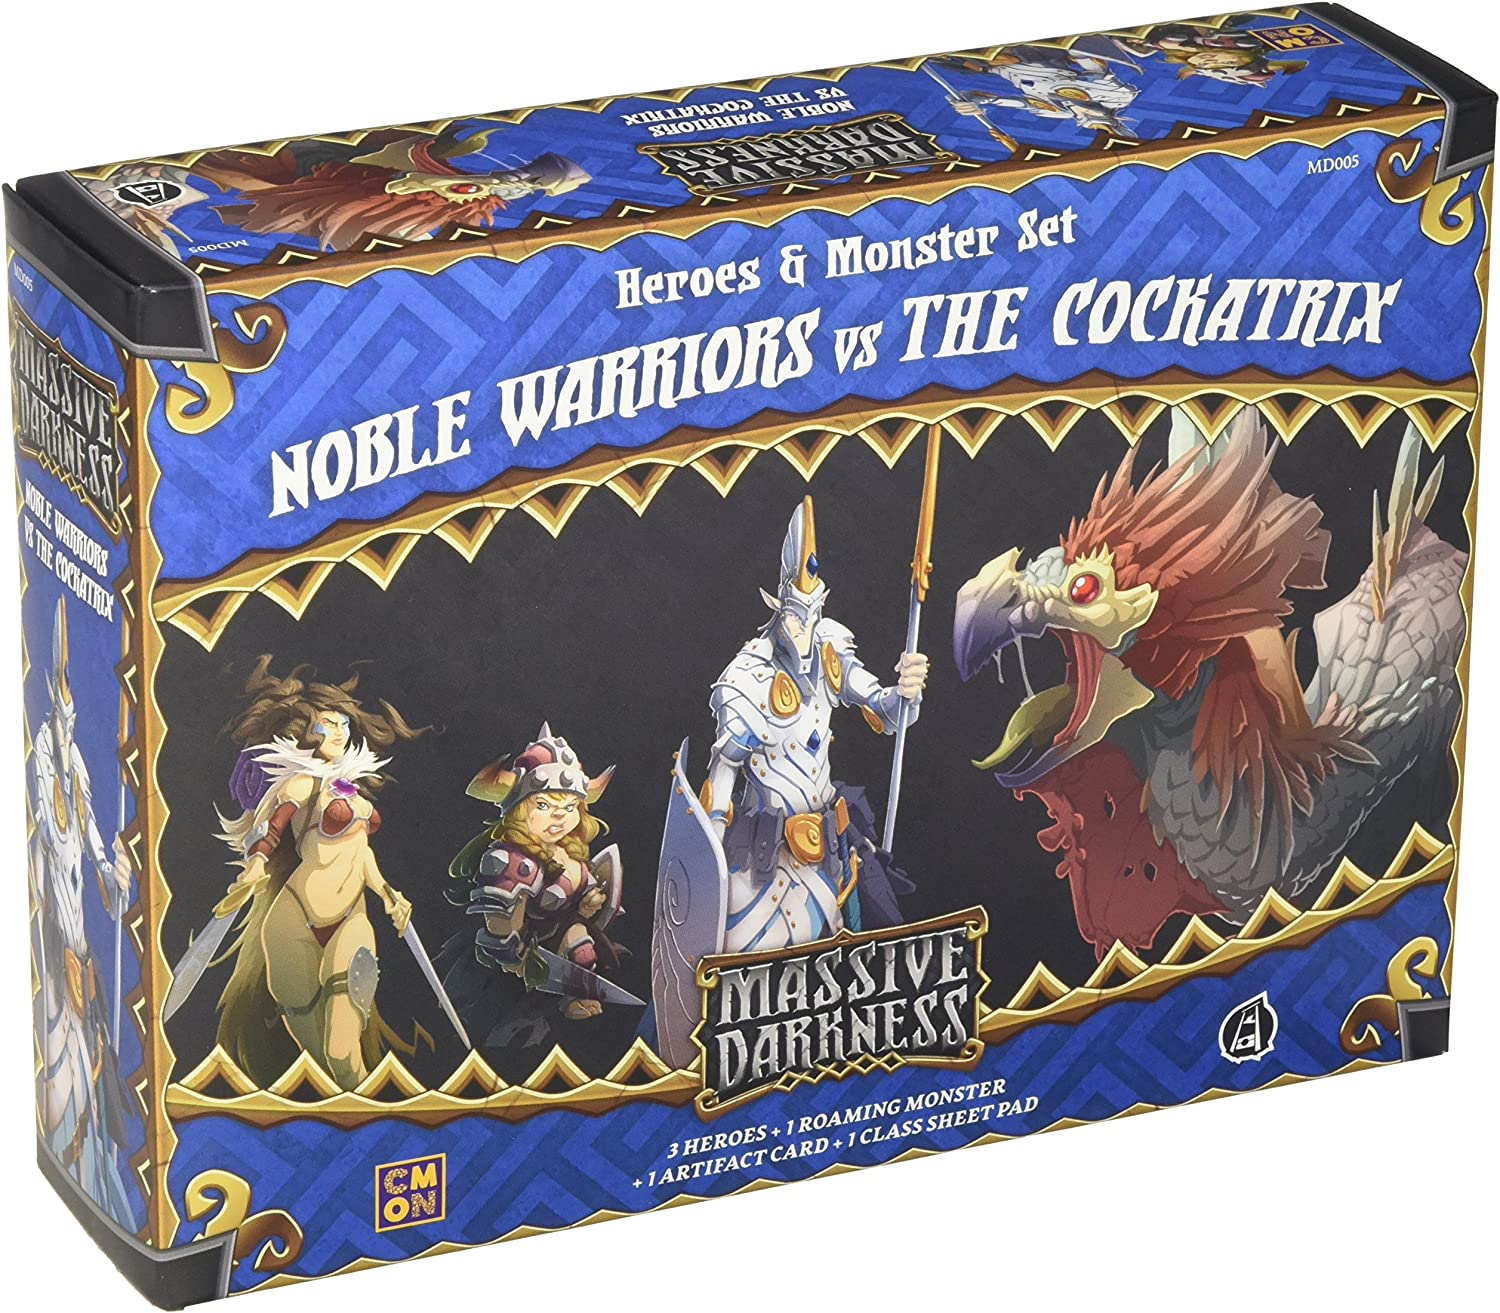 CoolMiniOrNot CMNMD005 Noble Warriors vs The Cockatrix: Oscuridad Masiva, Multicolor: Amazon.es: Juguetes y juegos